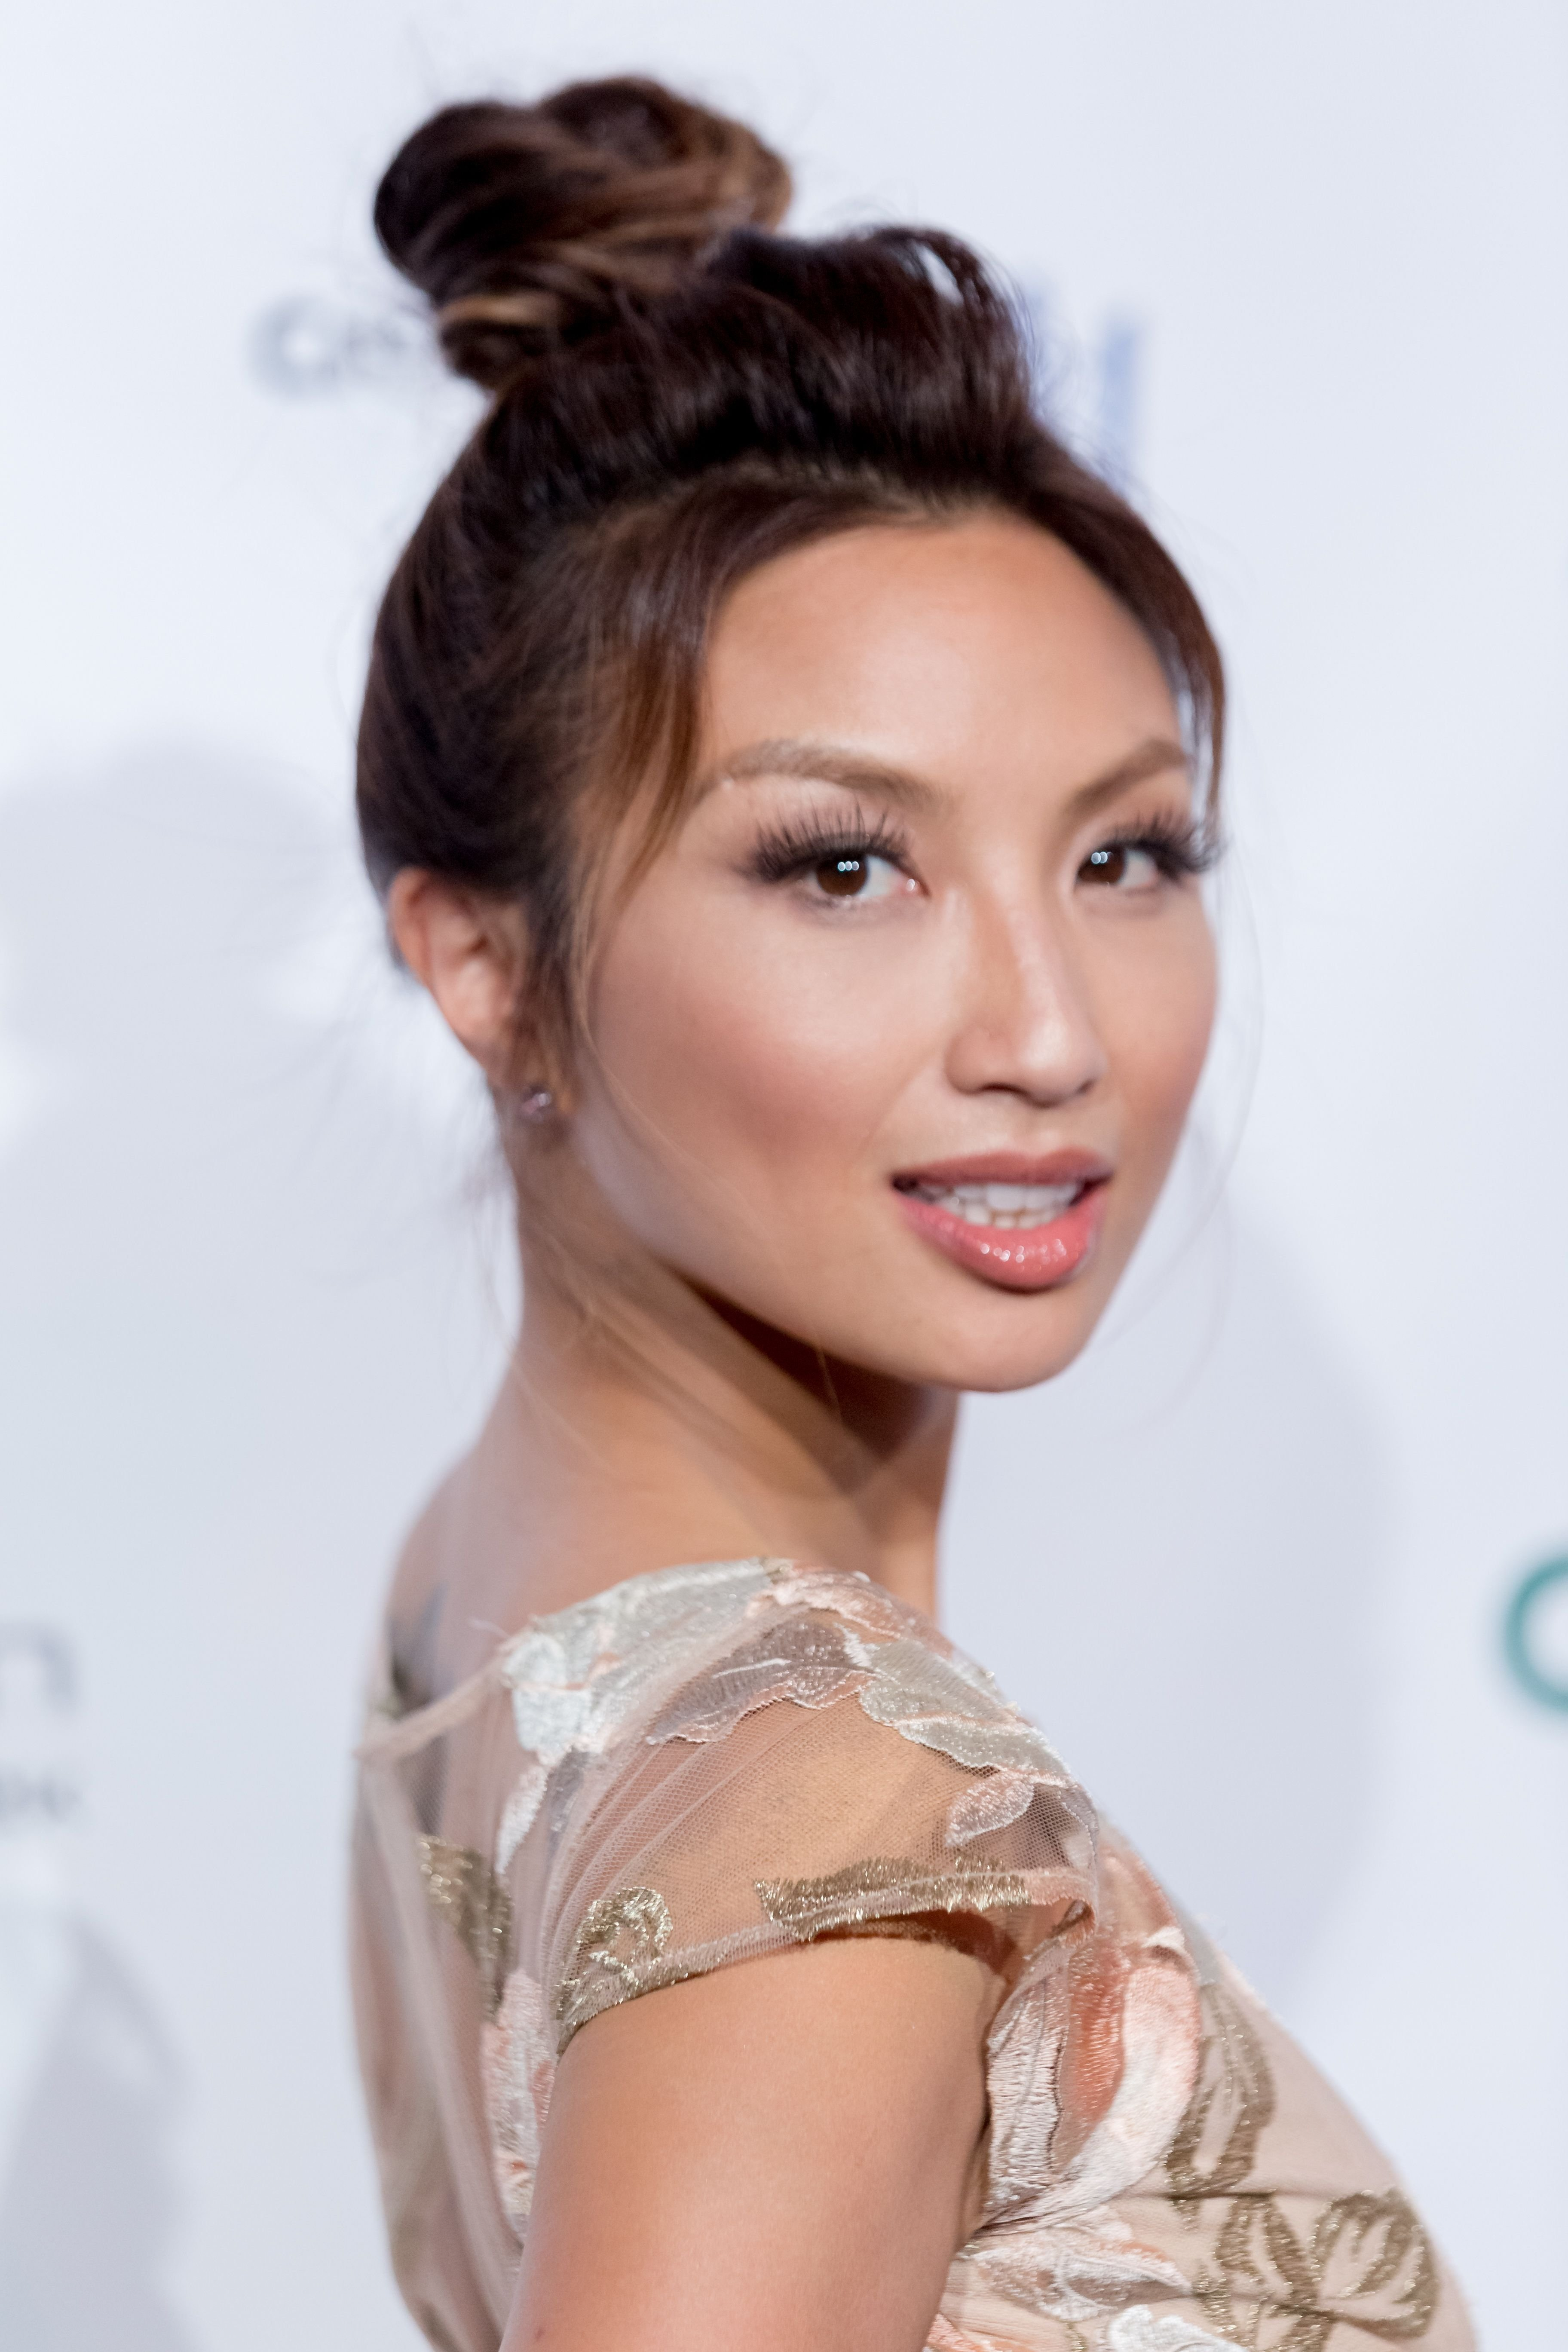 Television personality Jeannie Mai at a fashion week on September 29, 2016 in California. | Photo: Getty Images